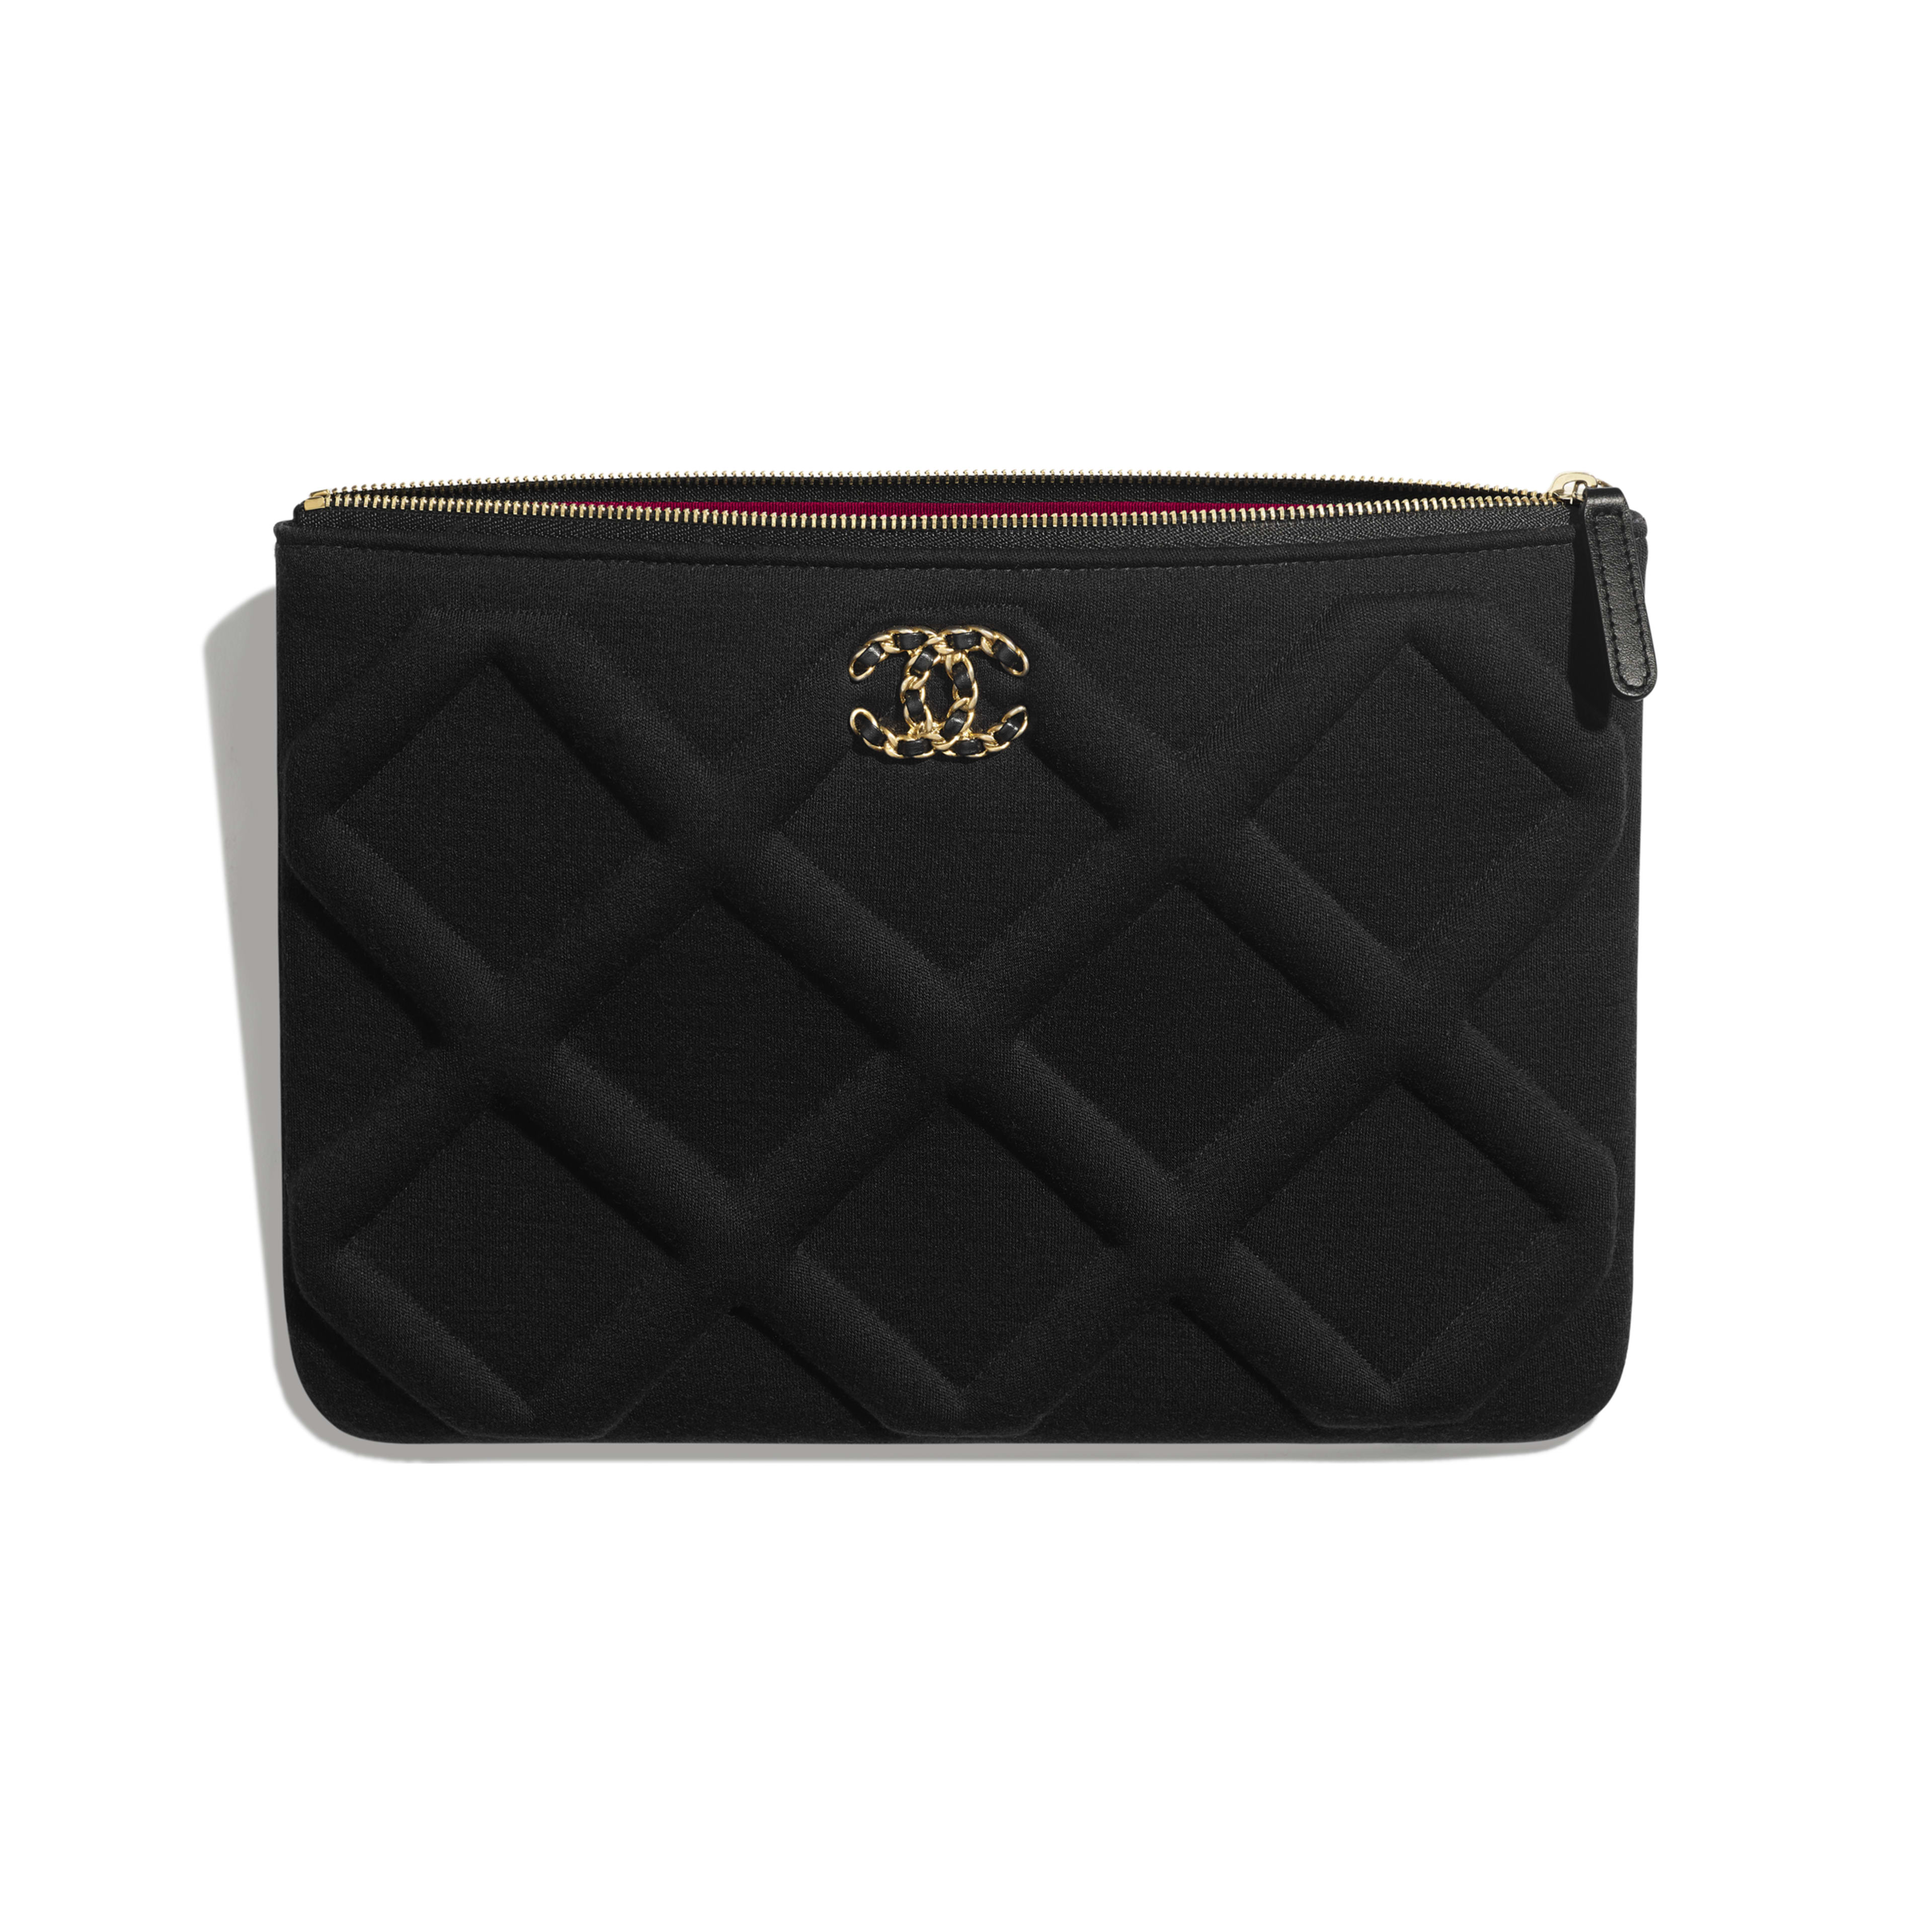 CHANEL 19 Pouch - Black - Jersey, Gold-Tone, Silver-Tone & Ruthenium-Finish Metal - Other view - see full sized version